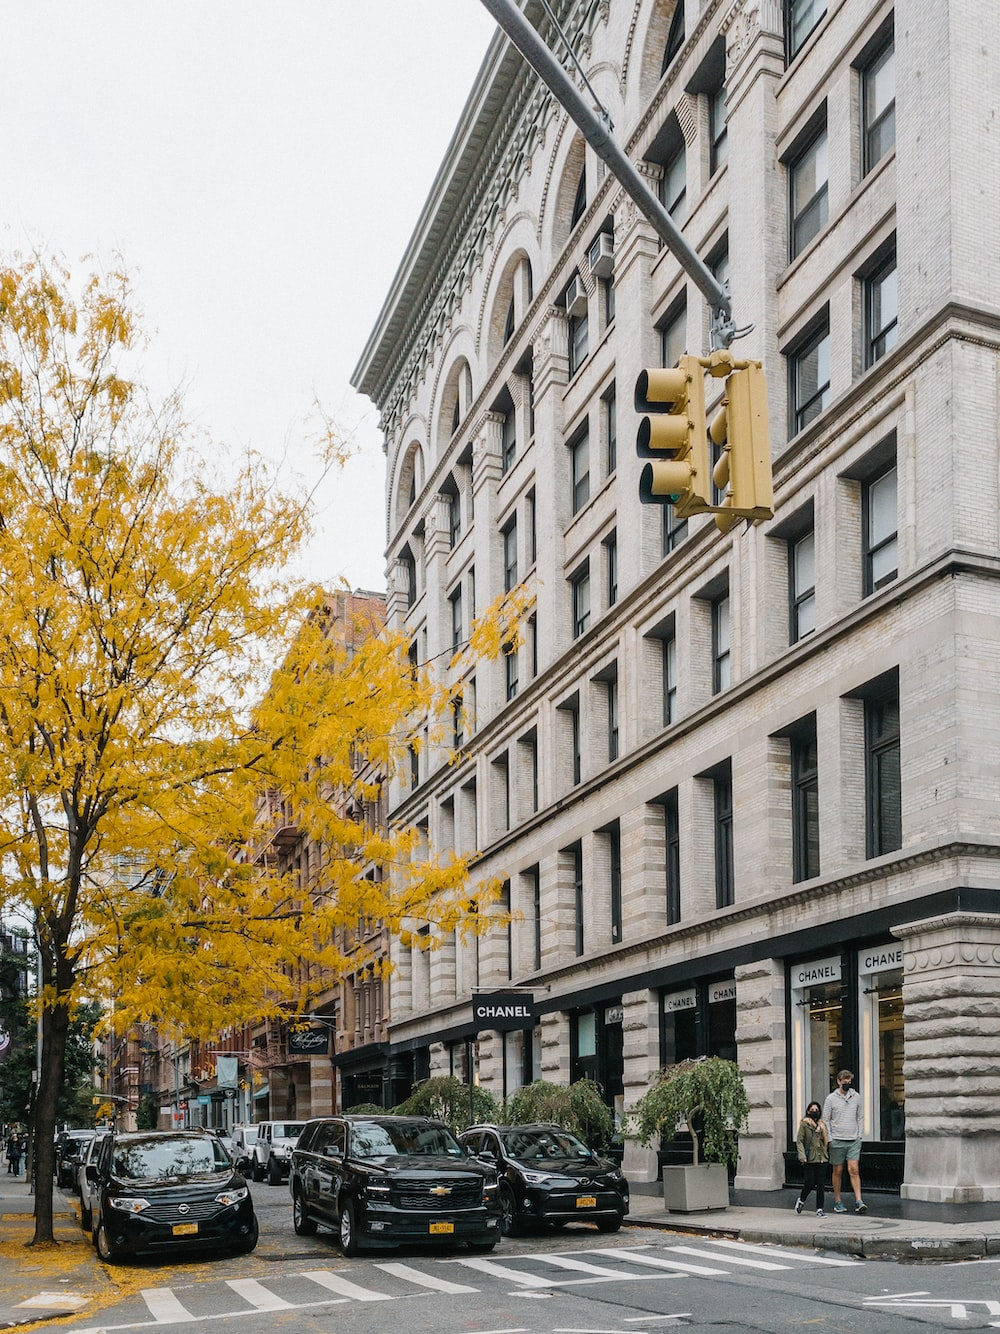 yellow leaf tree near white concrete building during daytime